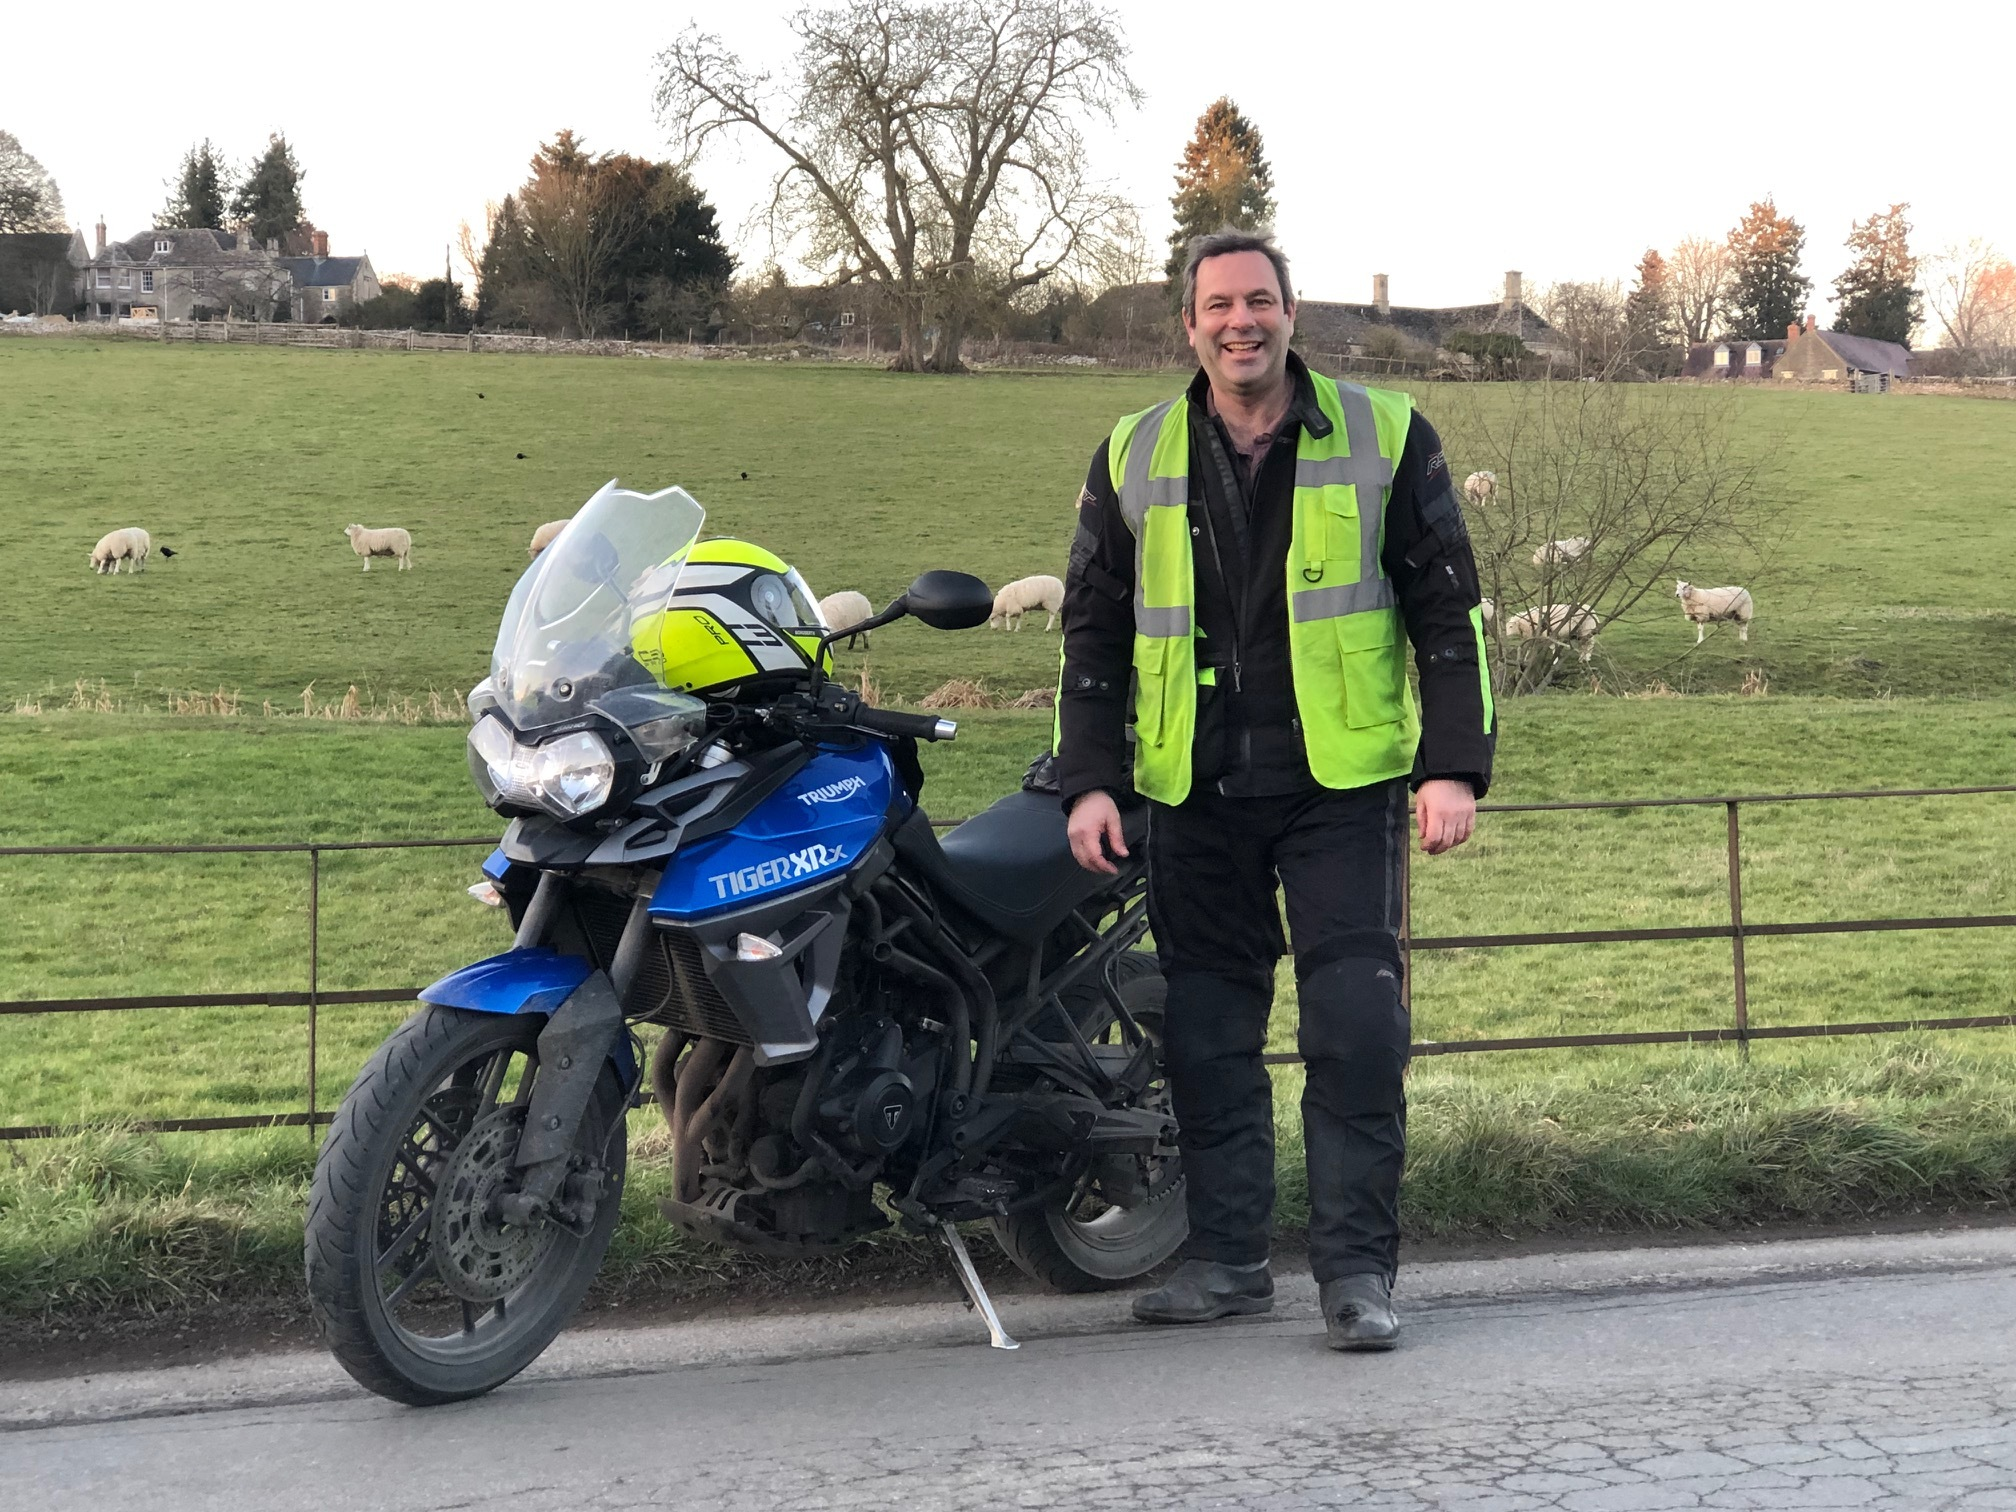 Swindon bikers prepare to ride more than 1,000 miles in 24 hours